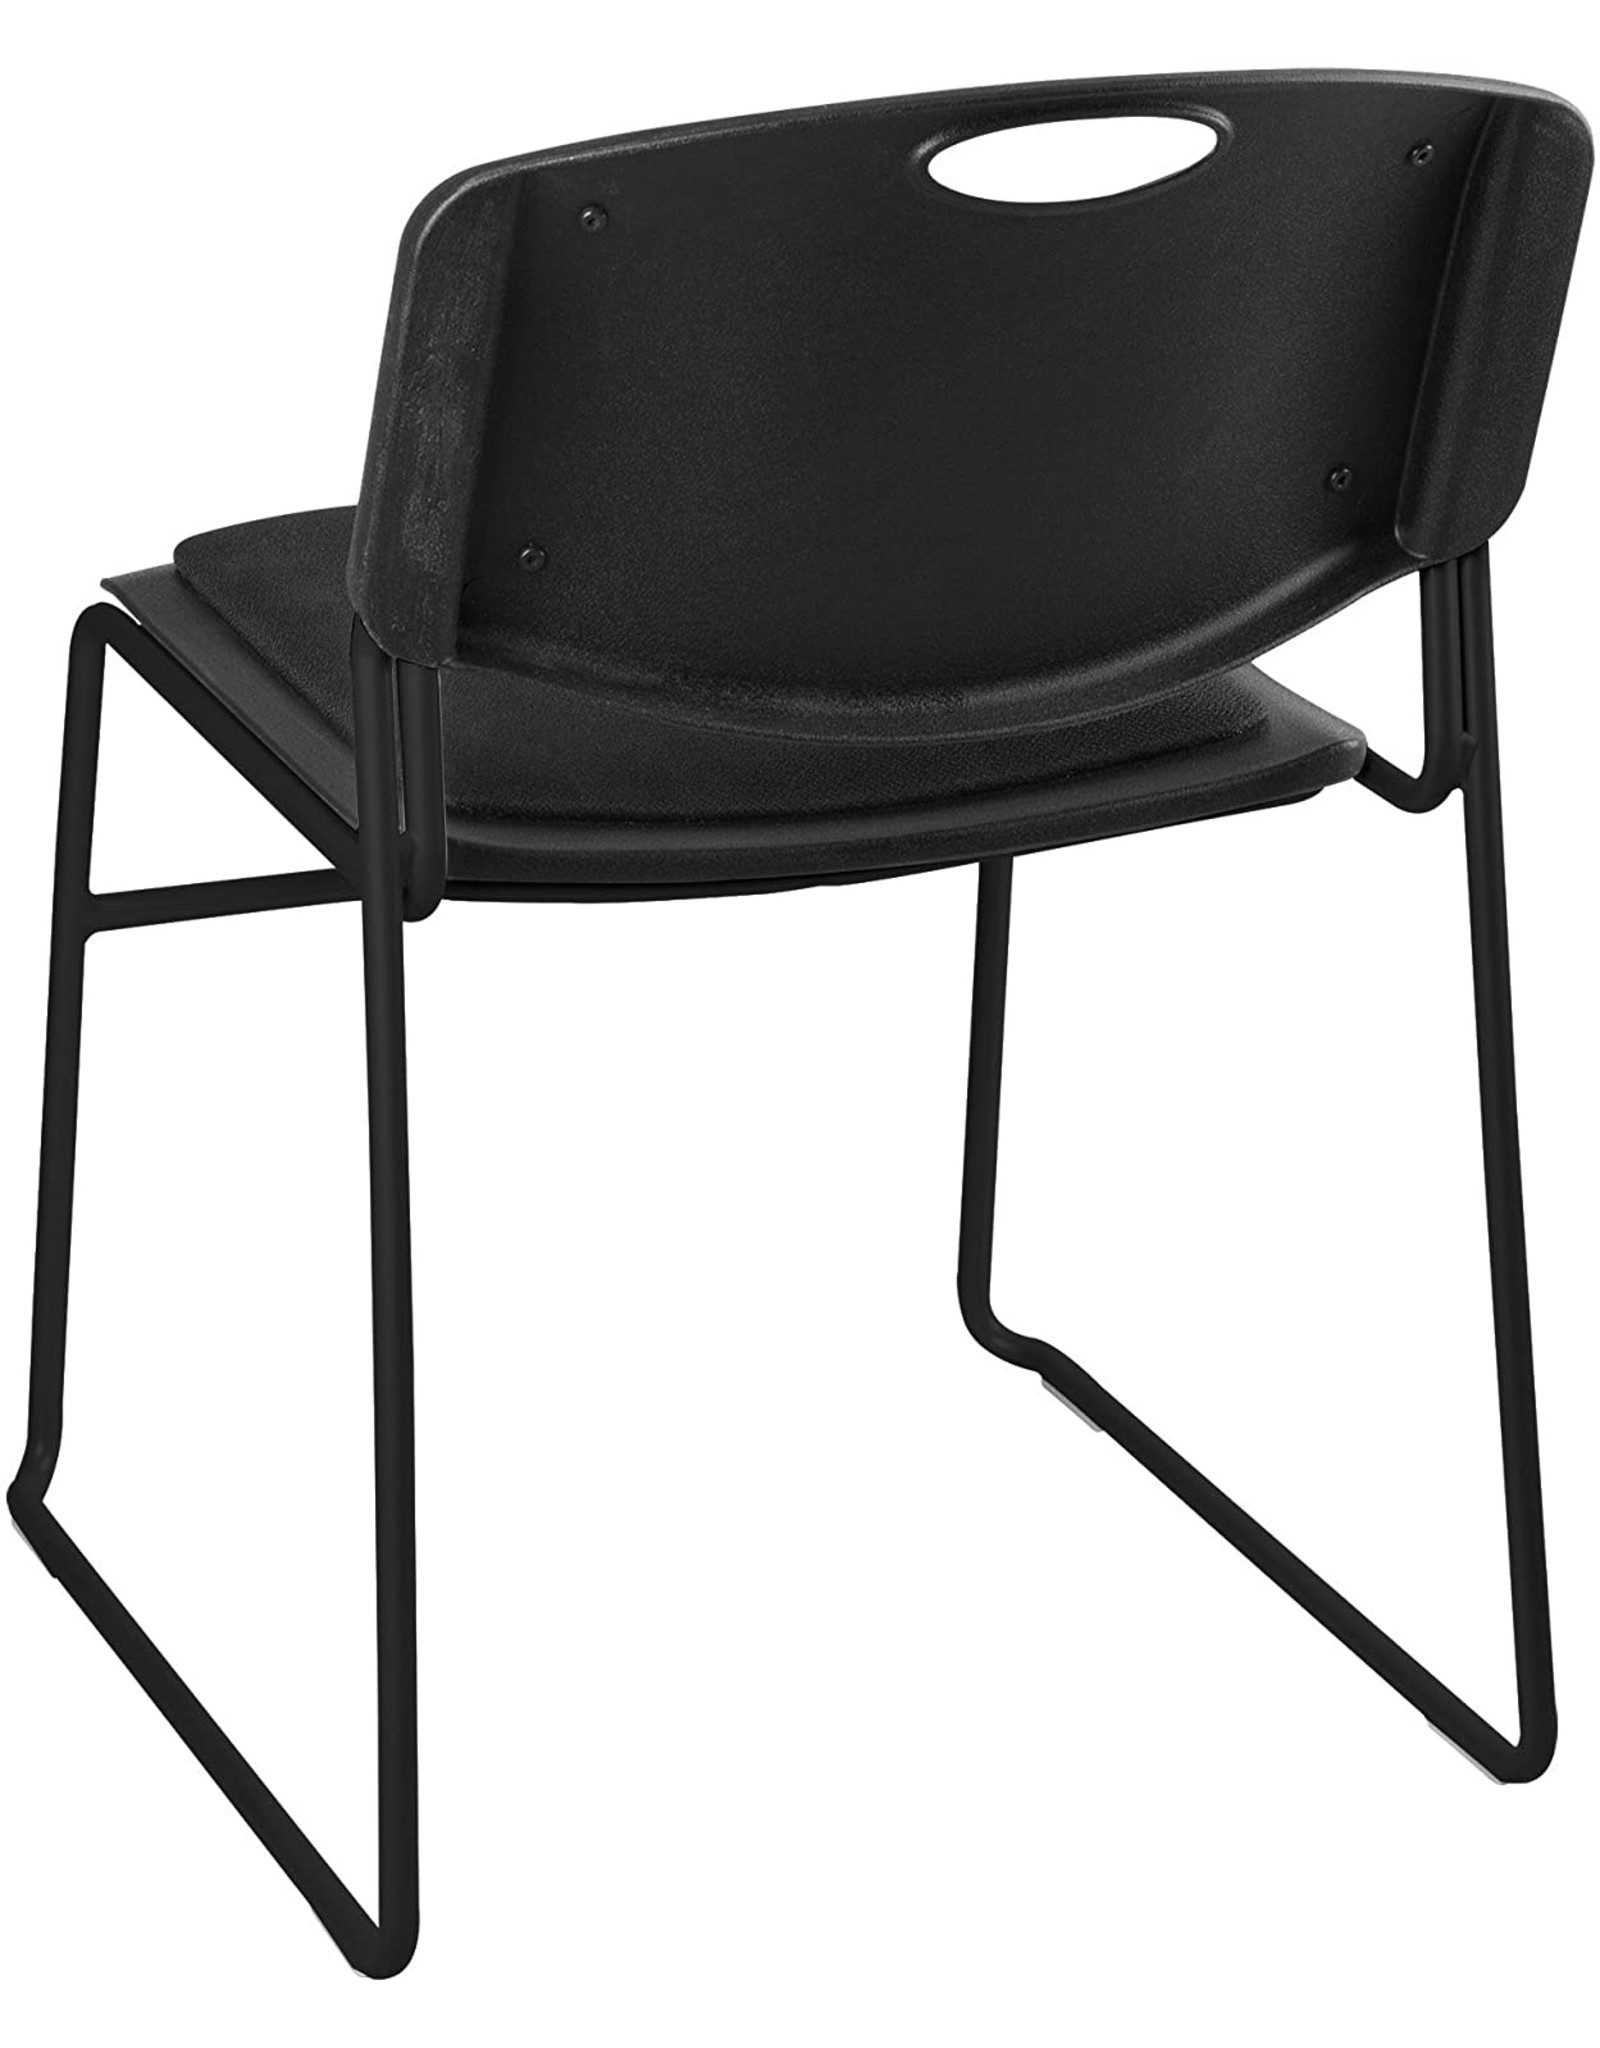 Norwood Commercial Furniture Norwood Commercial Furniture Heavy-Duty Plastic Stacking Chair w/Padded Seat and Back, Black, NOR-FEI1062-SO (Pack of 4)